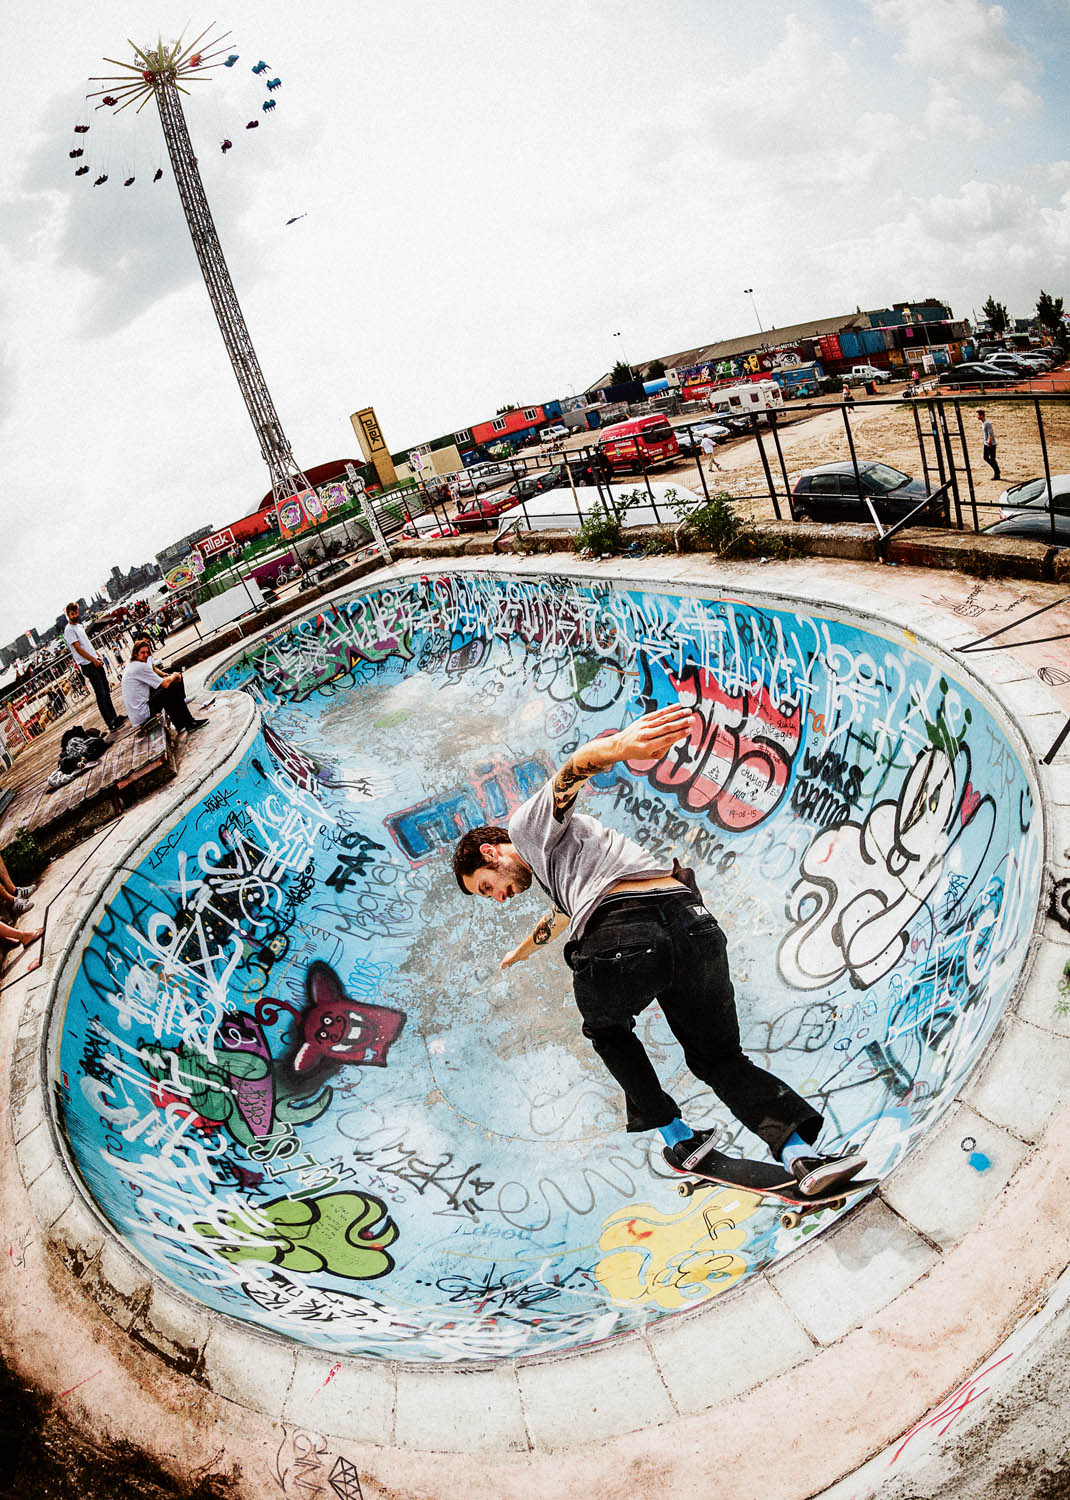 igor-fardin-backside-tailslide-over-deathbox-pool-amsterdam